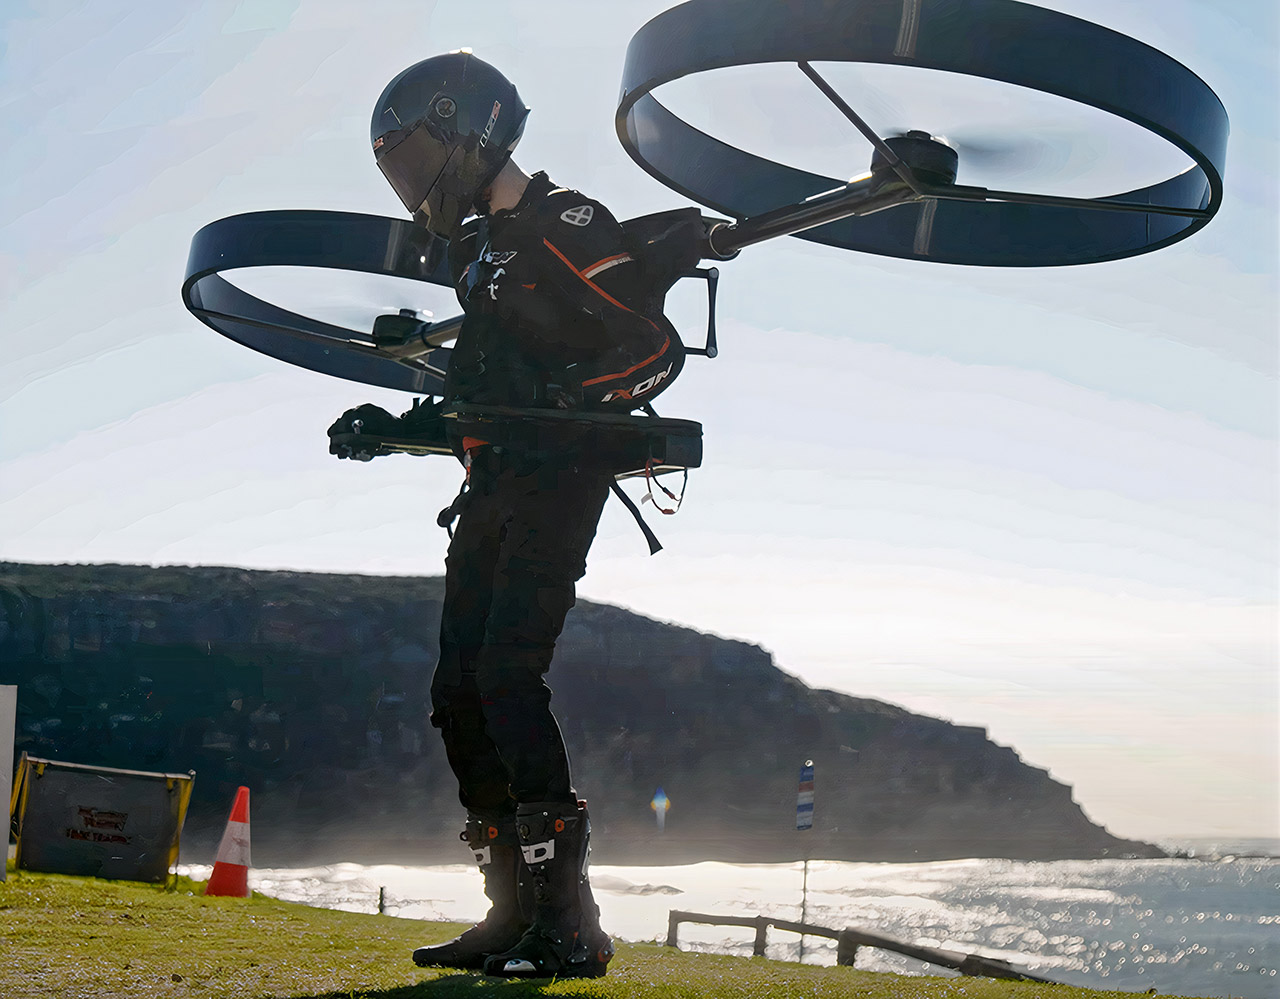 CopterPack Backpack Helicopter Successfully Completes First Flight – TechEBlog